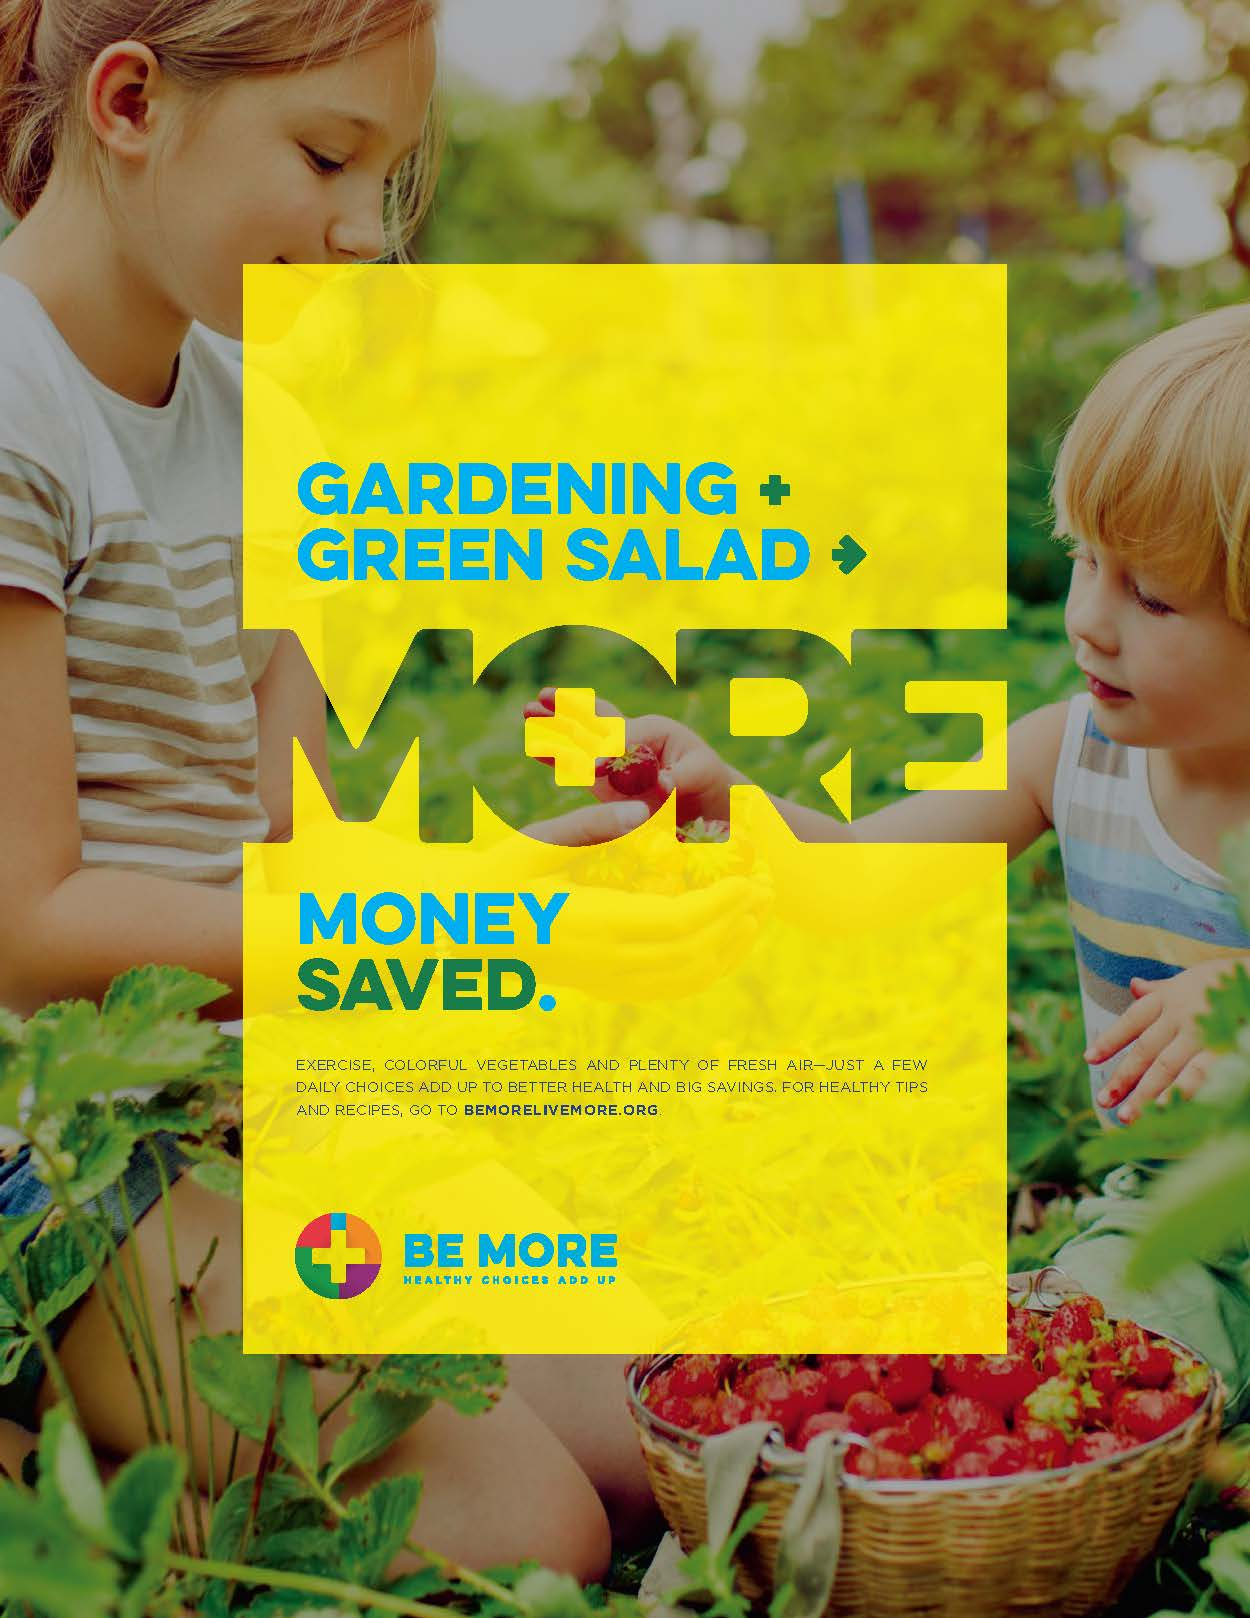 Ad/Material Details: Be More: Gardening (Poster)